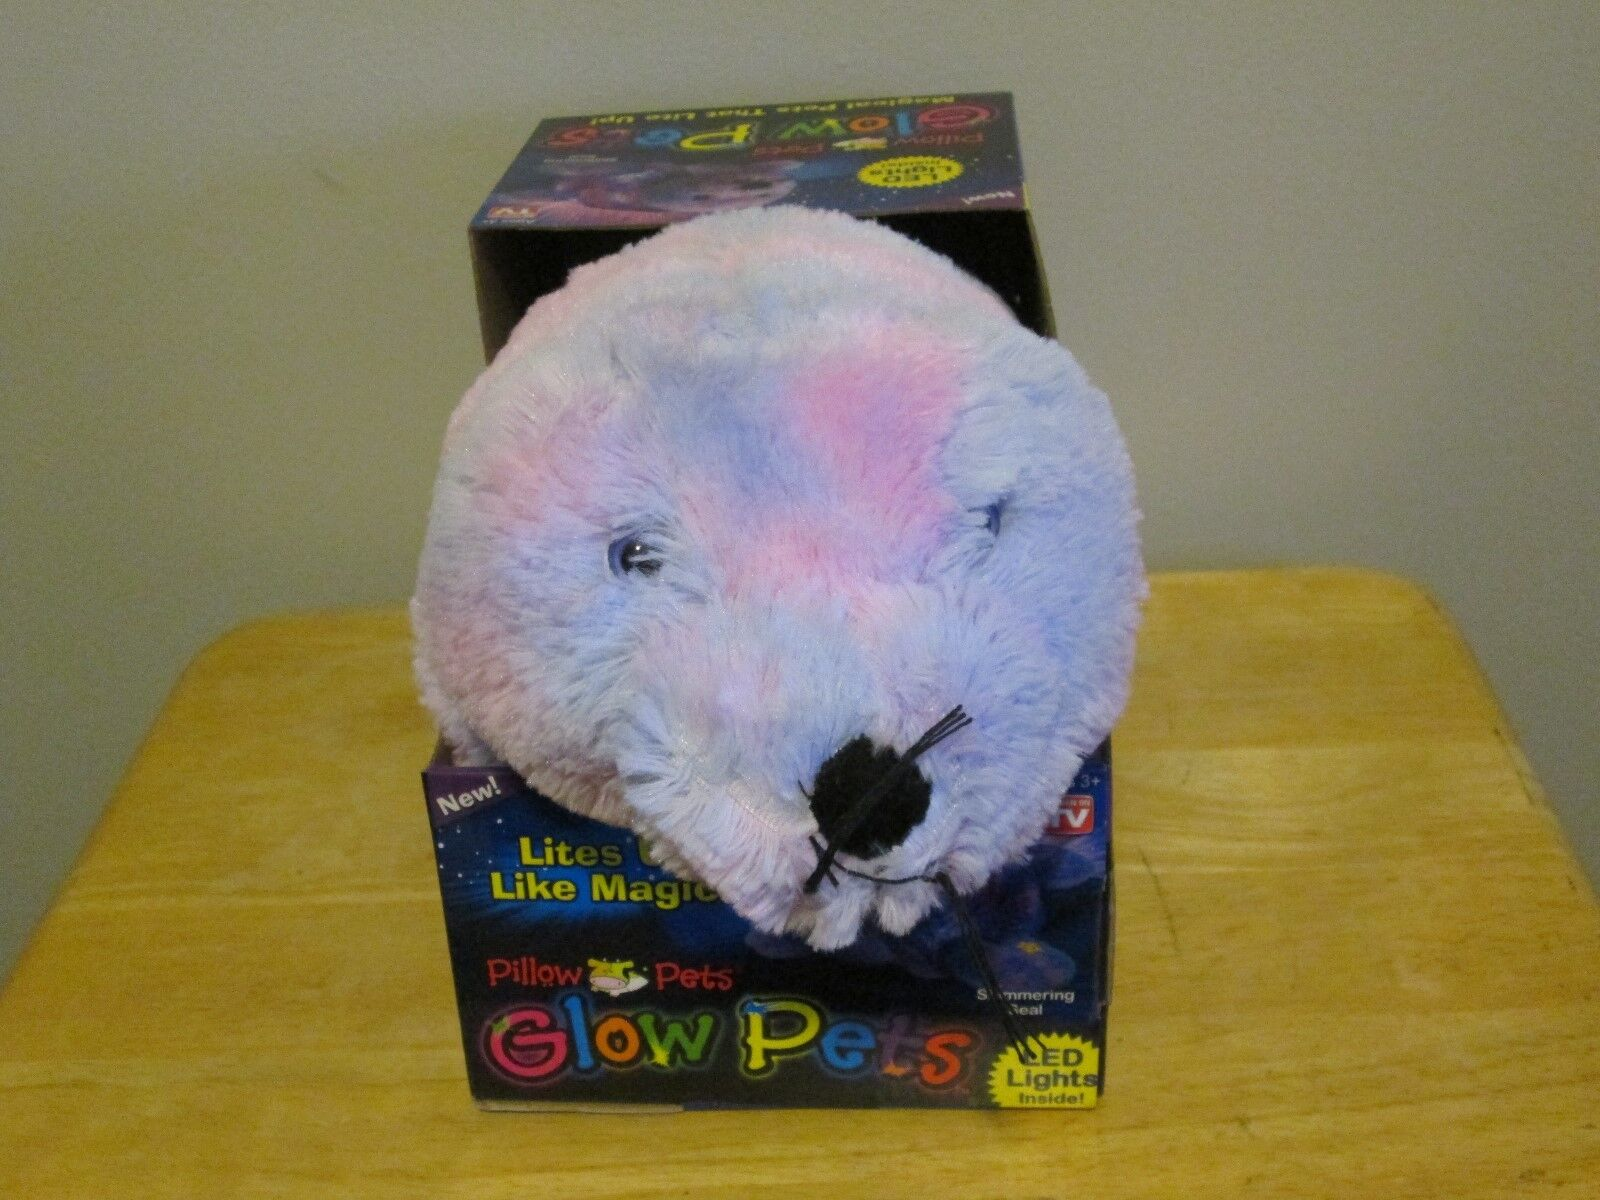 Pillow Pets Glow Pets Seal 15 Inch Plush Lights Up Bedtime T